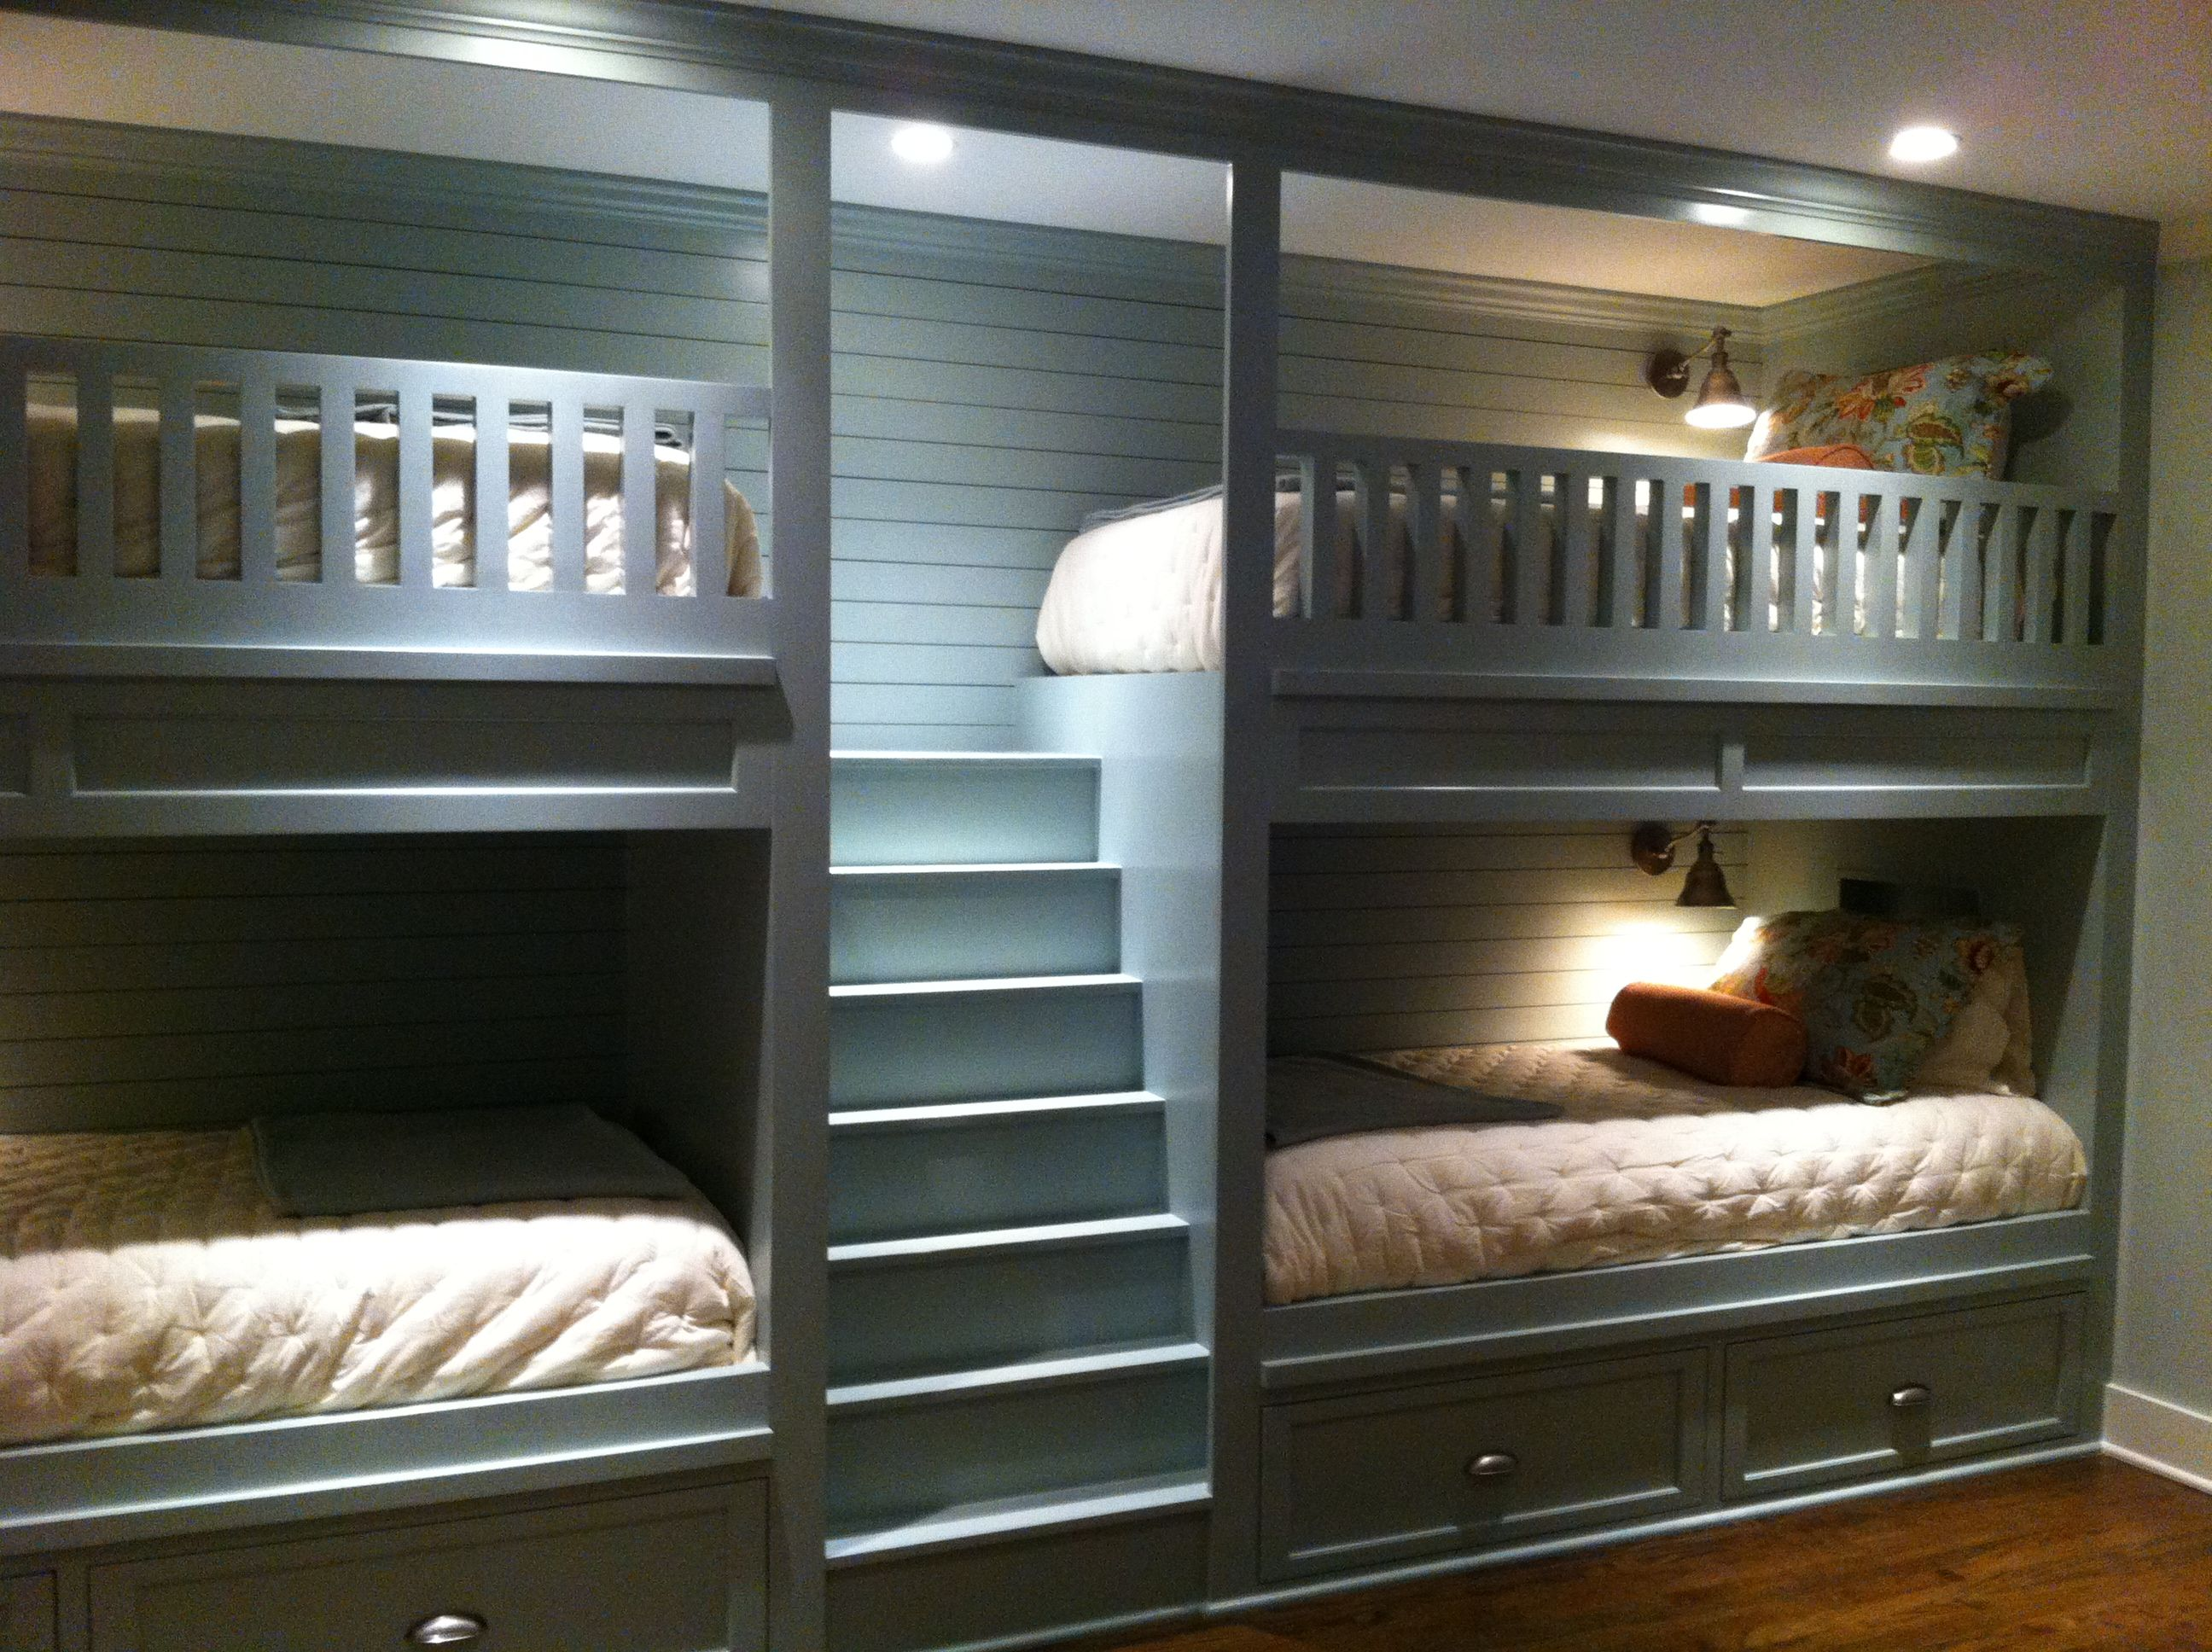 Double Bunk Beds In Our New Basement Bunk Room Fun For